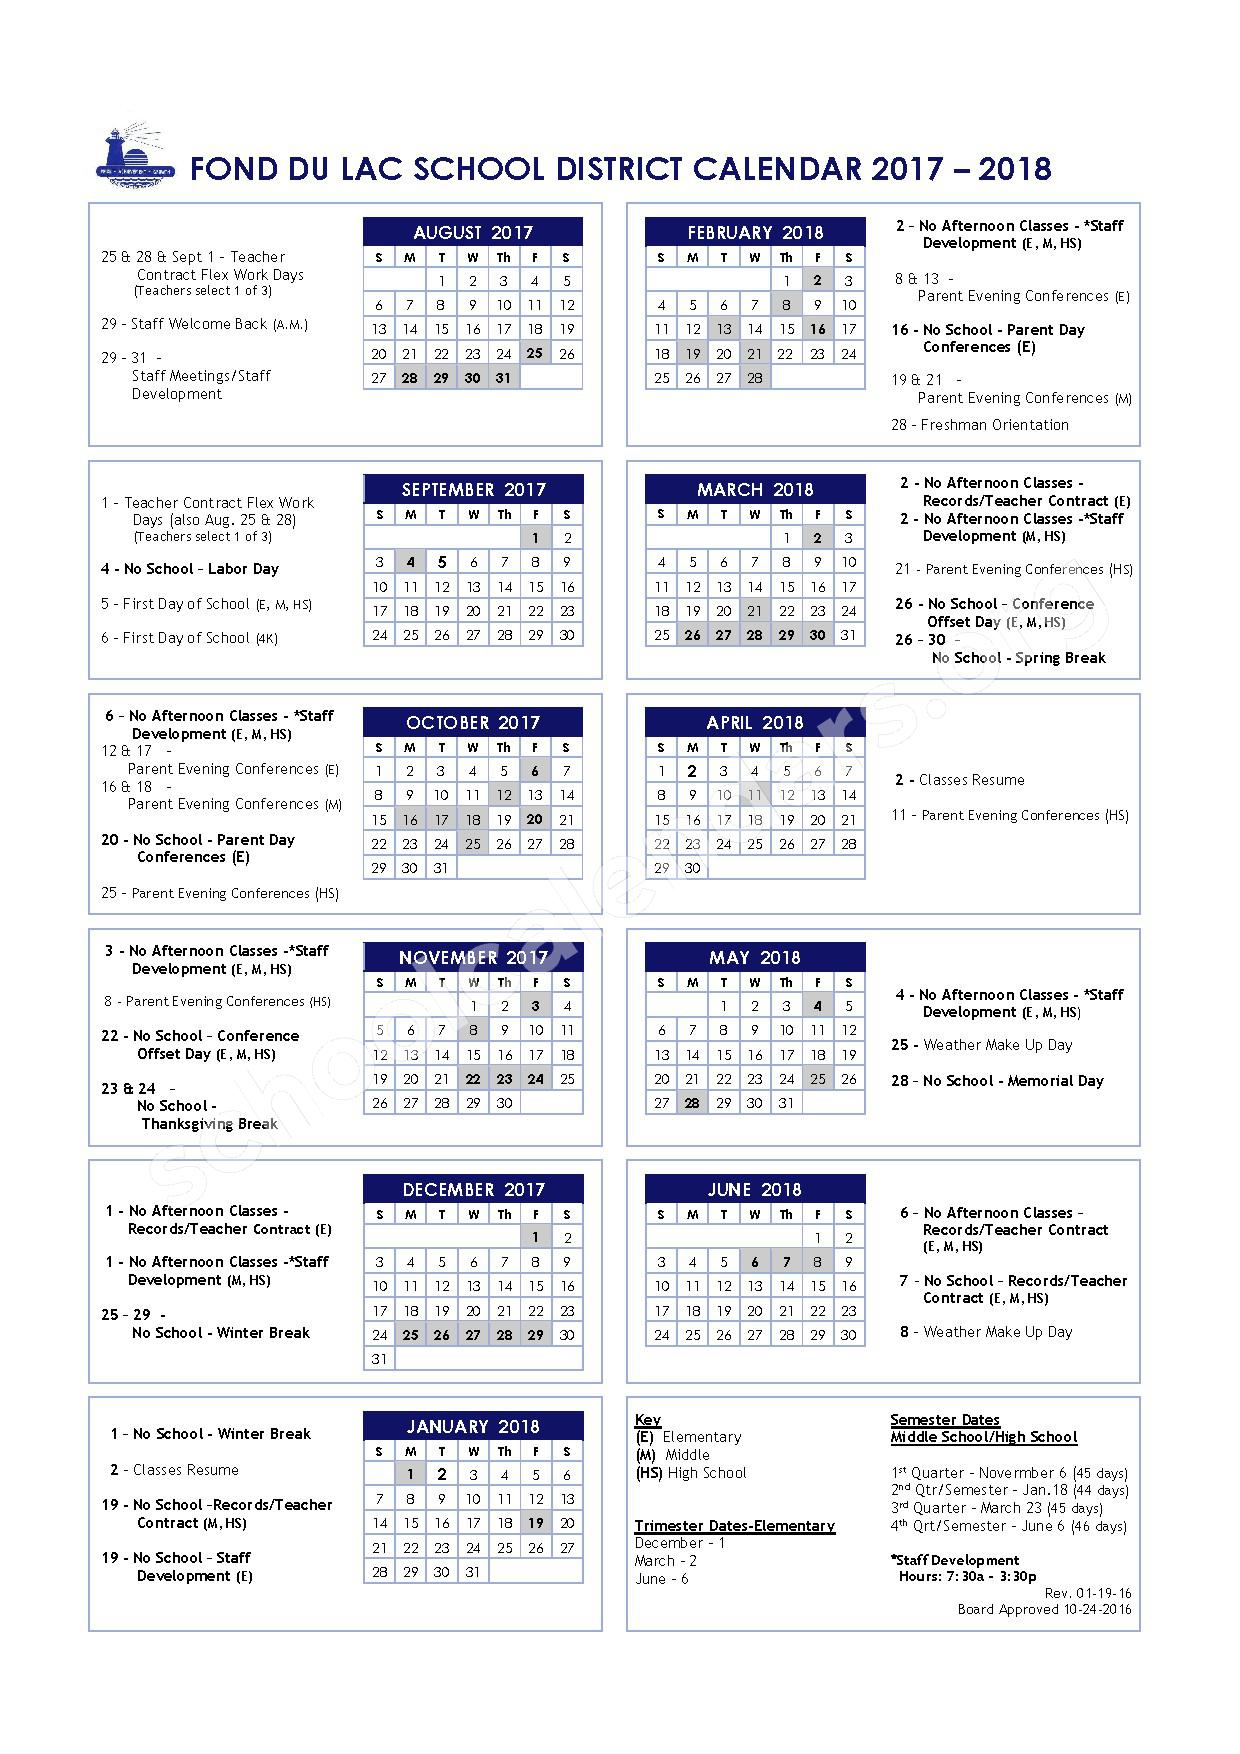 2017 - 2018 Fond Du Lac School Calendar – Theisen Middle School – page 1